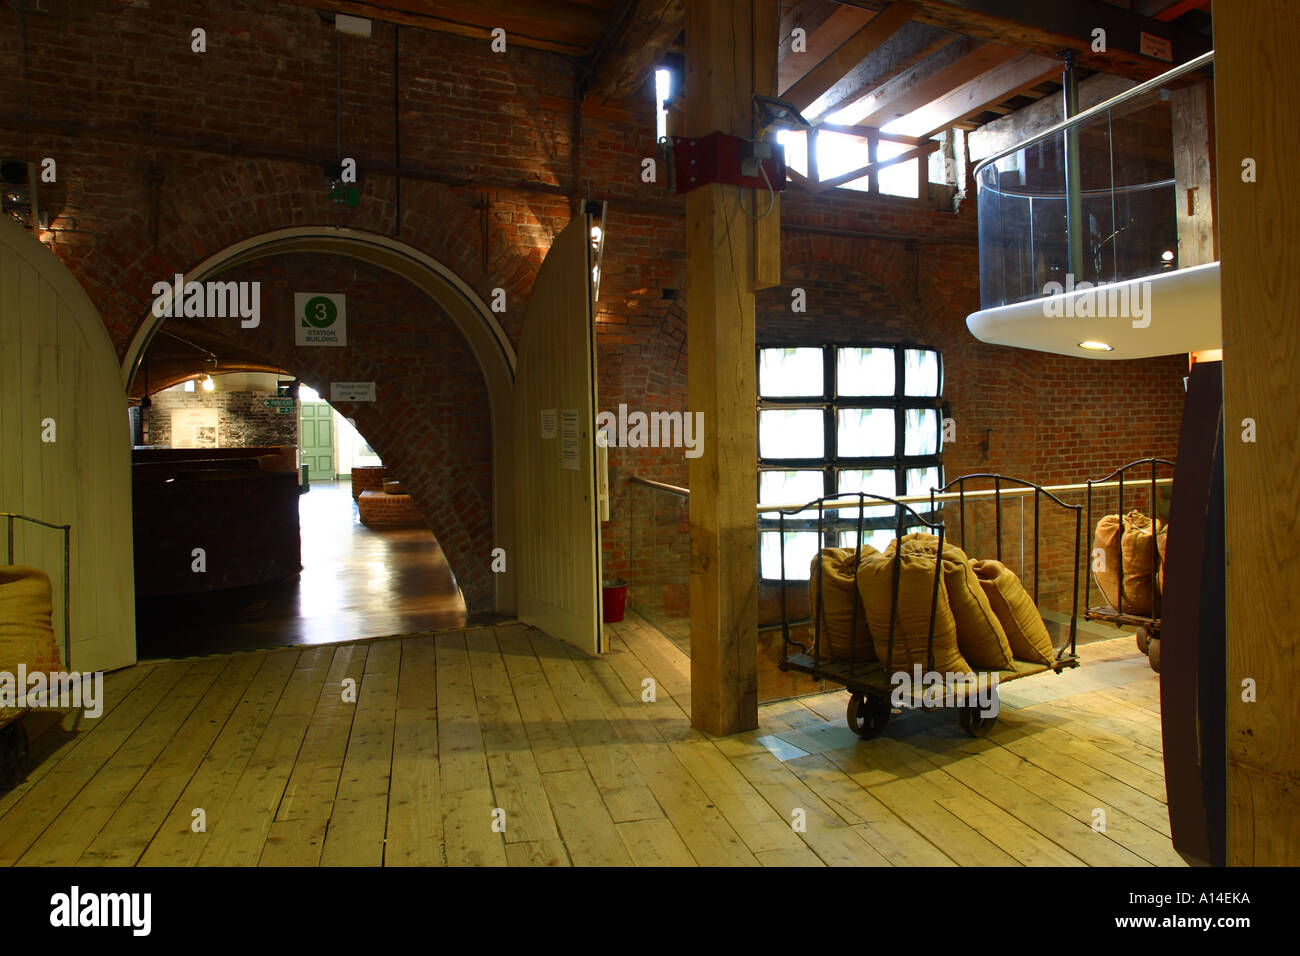 Manchester Museum of Science and Industry restored Victorian sewers - Stock Image